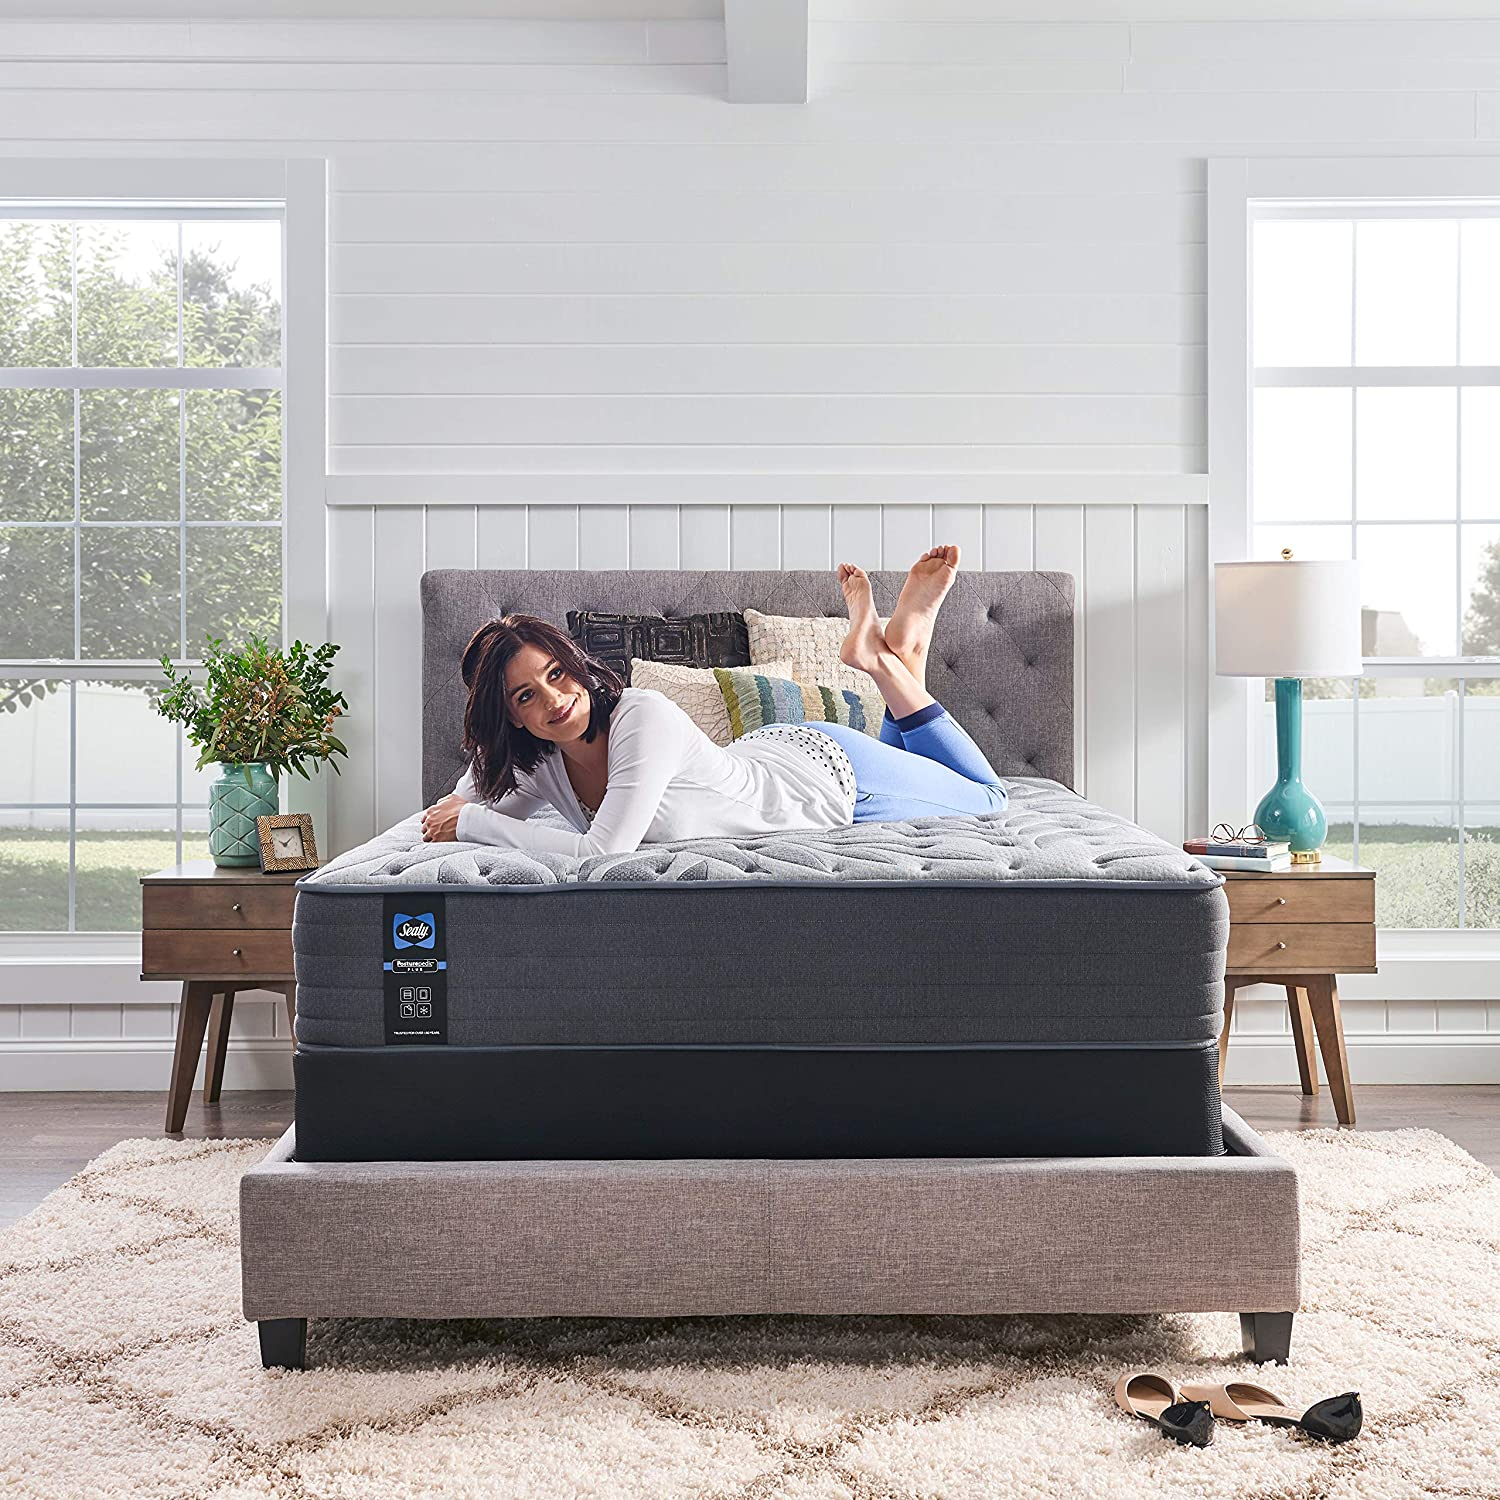 king size posturepedic mattress